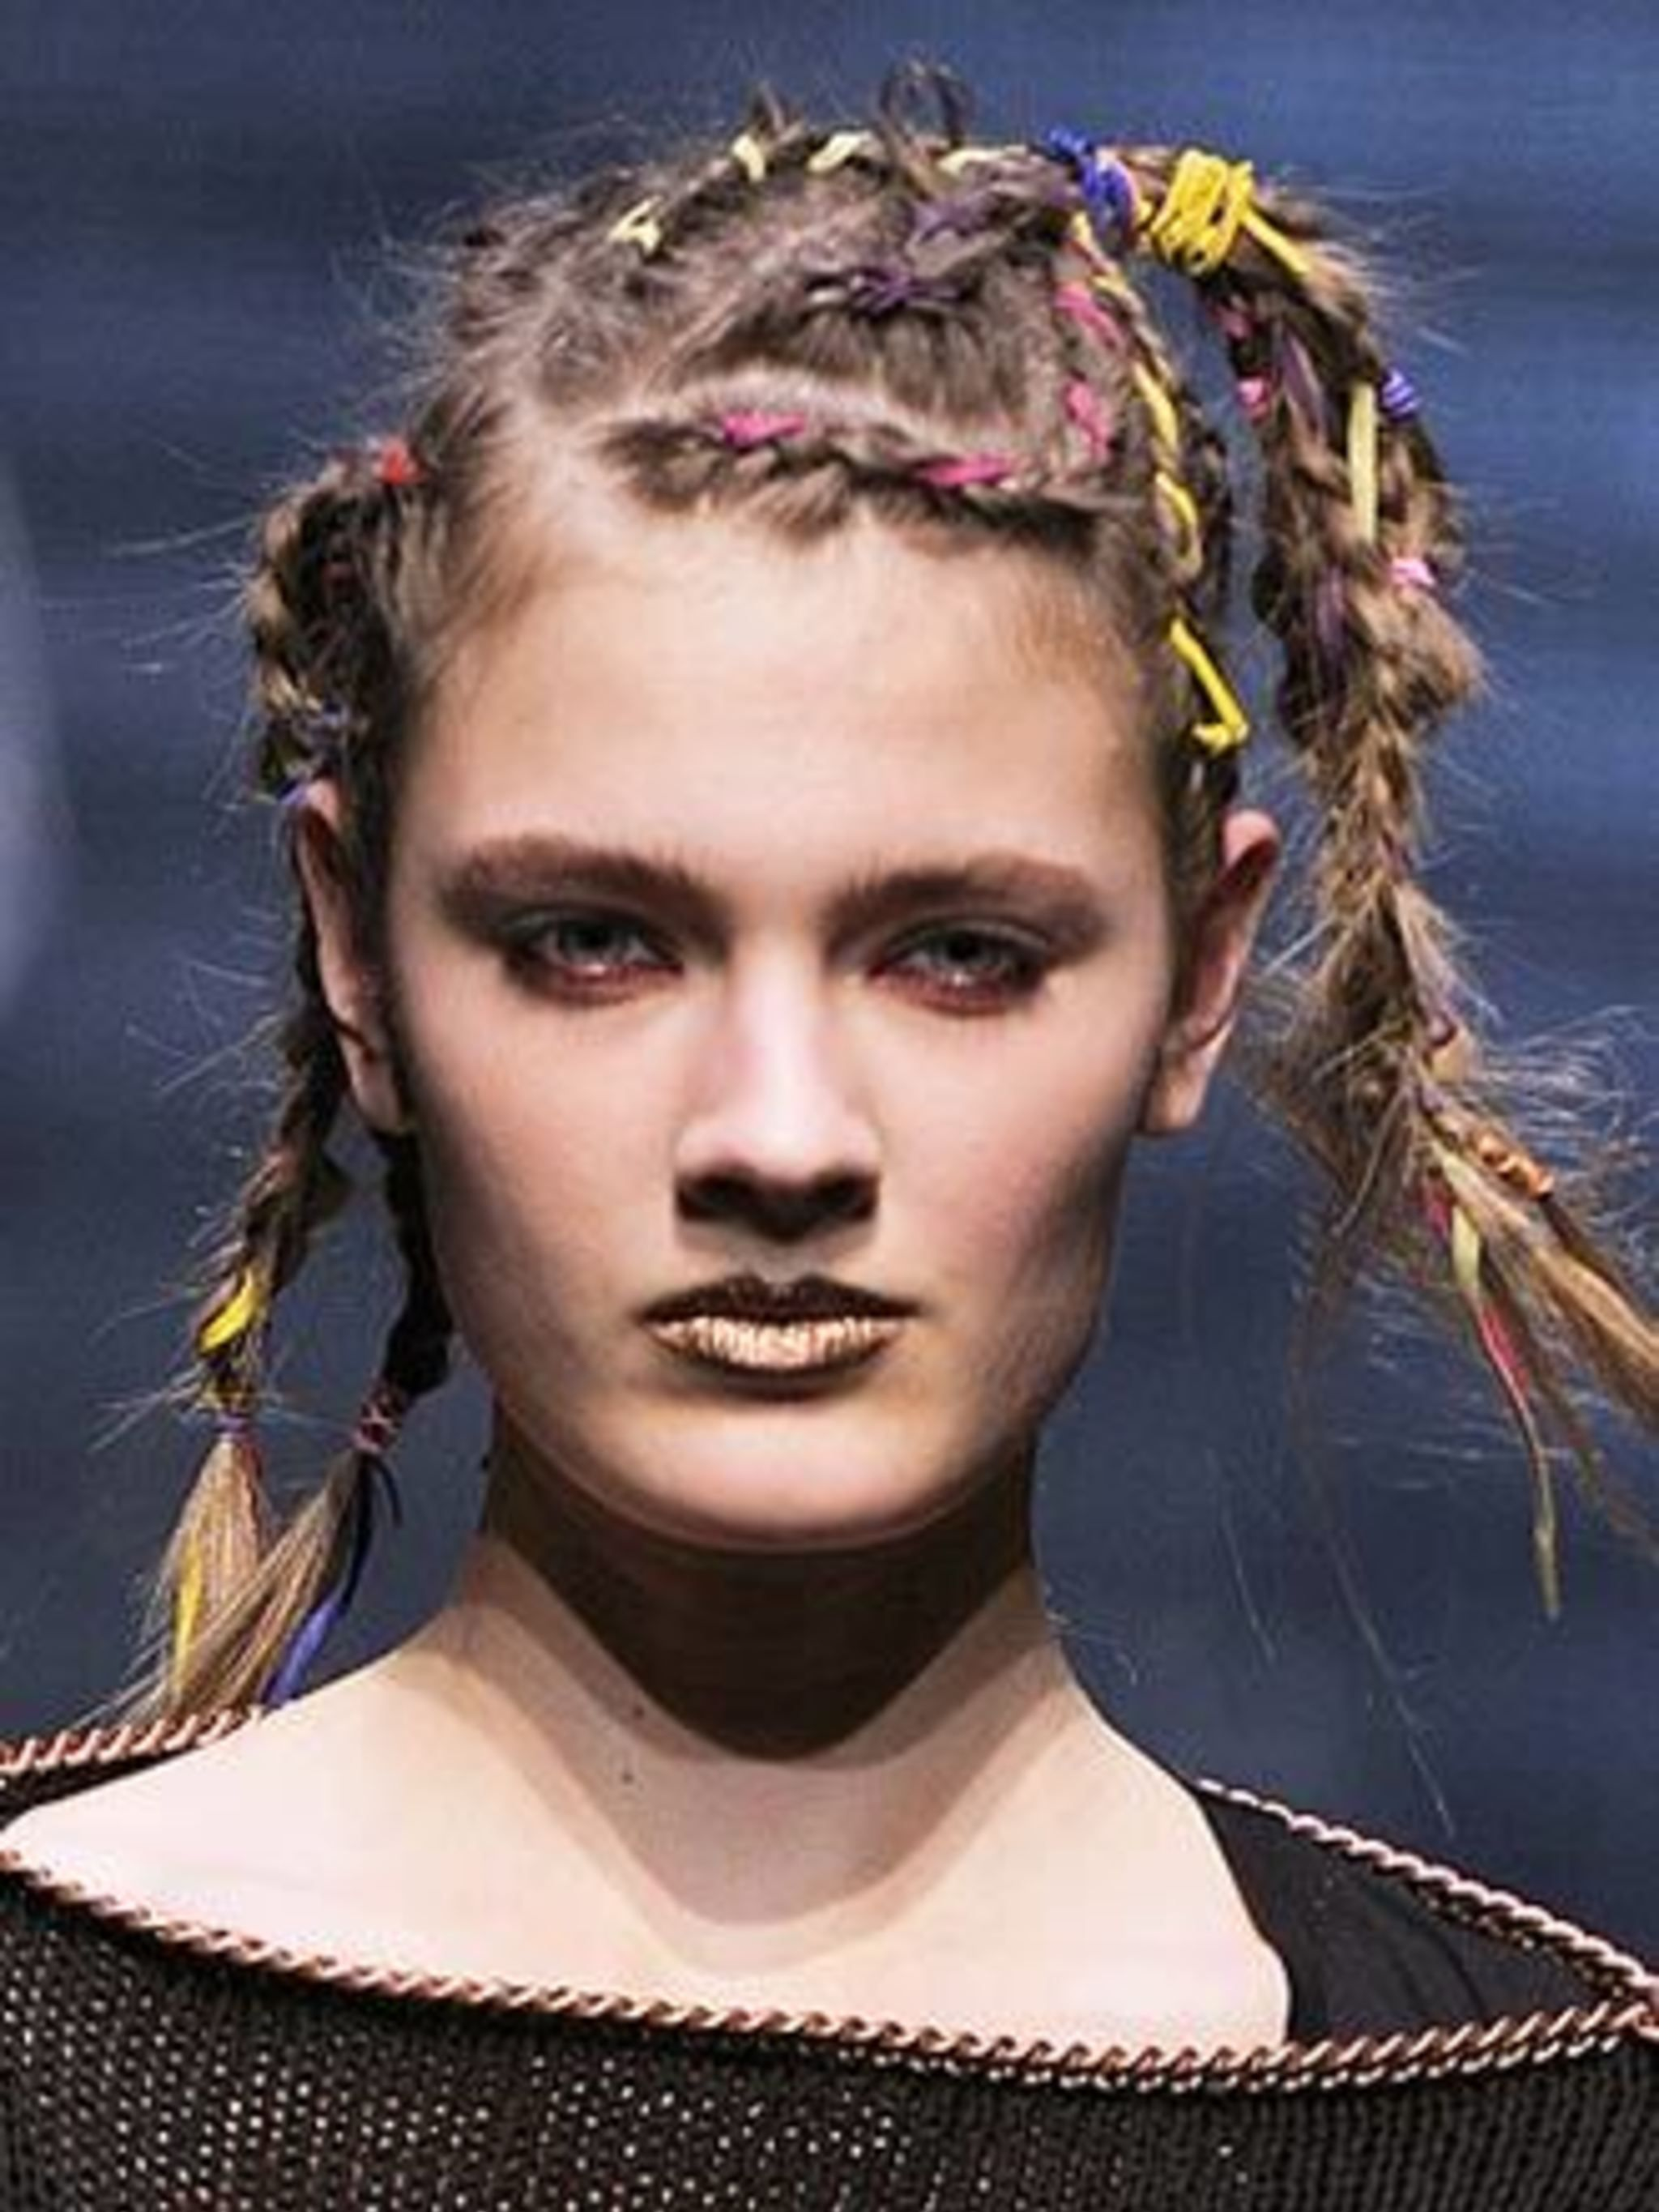 <p><strong>Plaits</strong>At Topshop Unique, hair stylist Sam Hillerby created cool, edgy plaits inspired by 80's star Bow Wow Wow, and employed the help of corn braiding specialists from the Lady Diamond Salon in Hackney. Guido's wet-look plaits for Luel